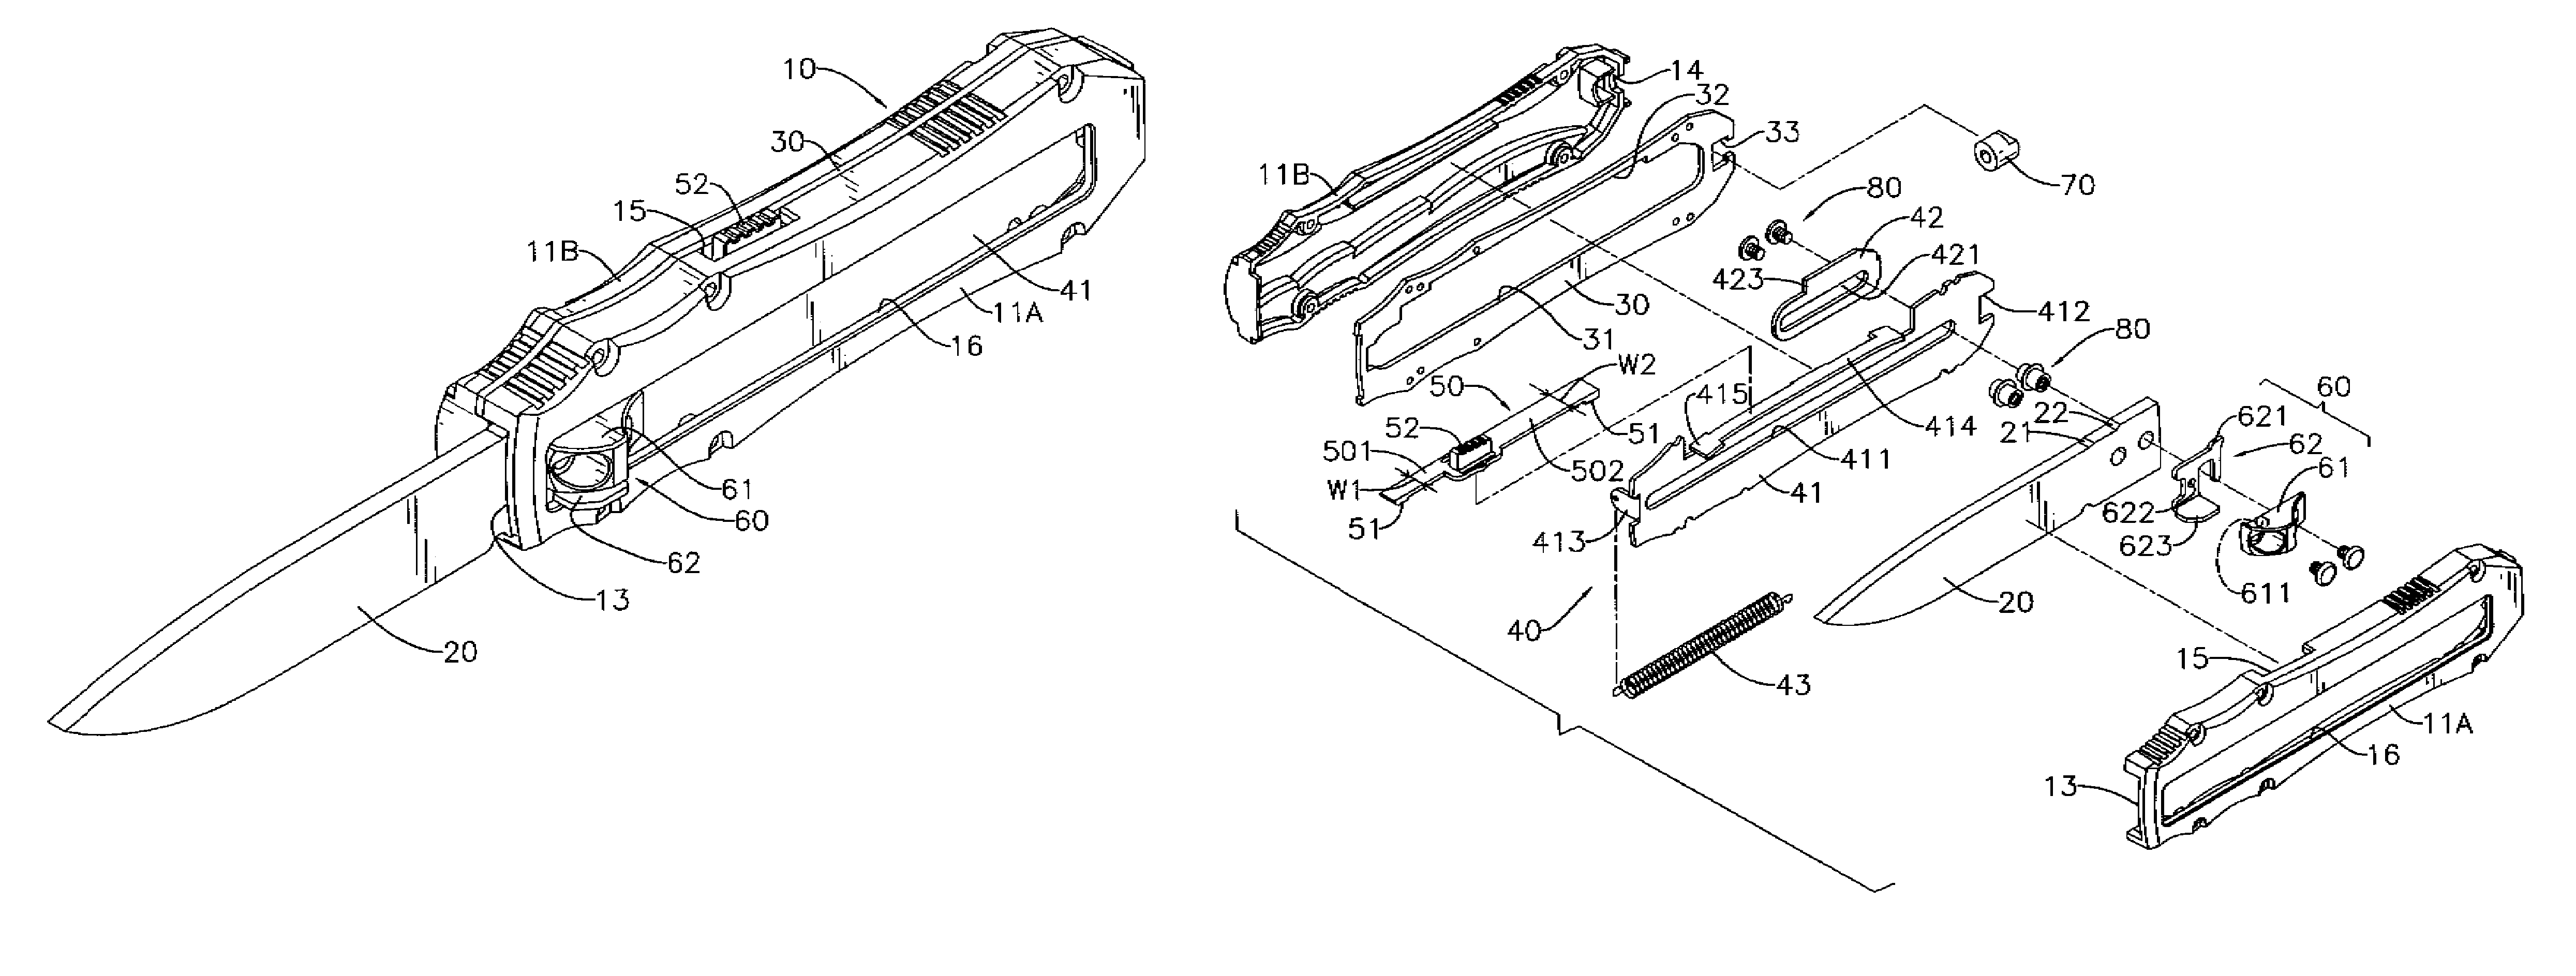 patent us7797838 retractable blade knife with opening